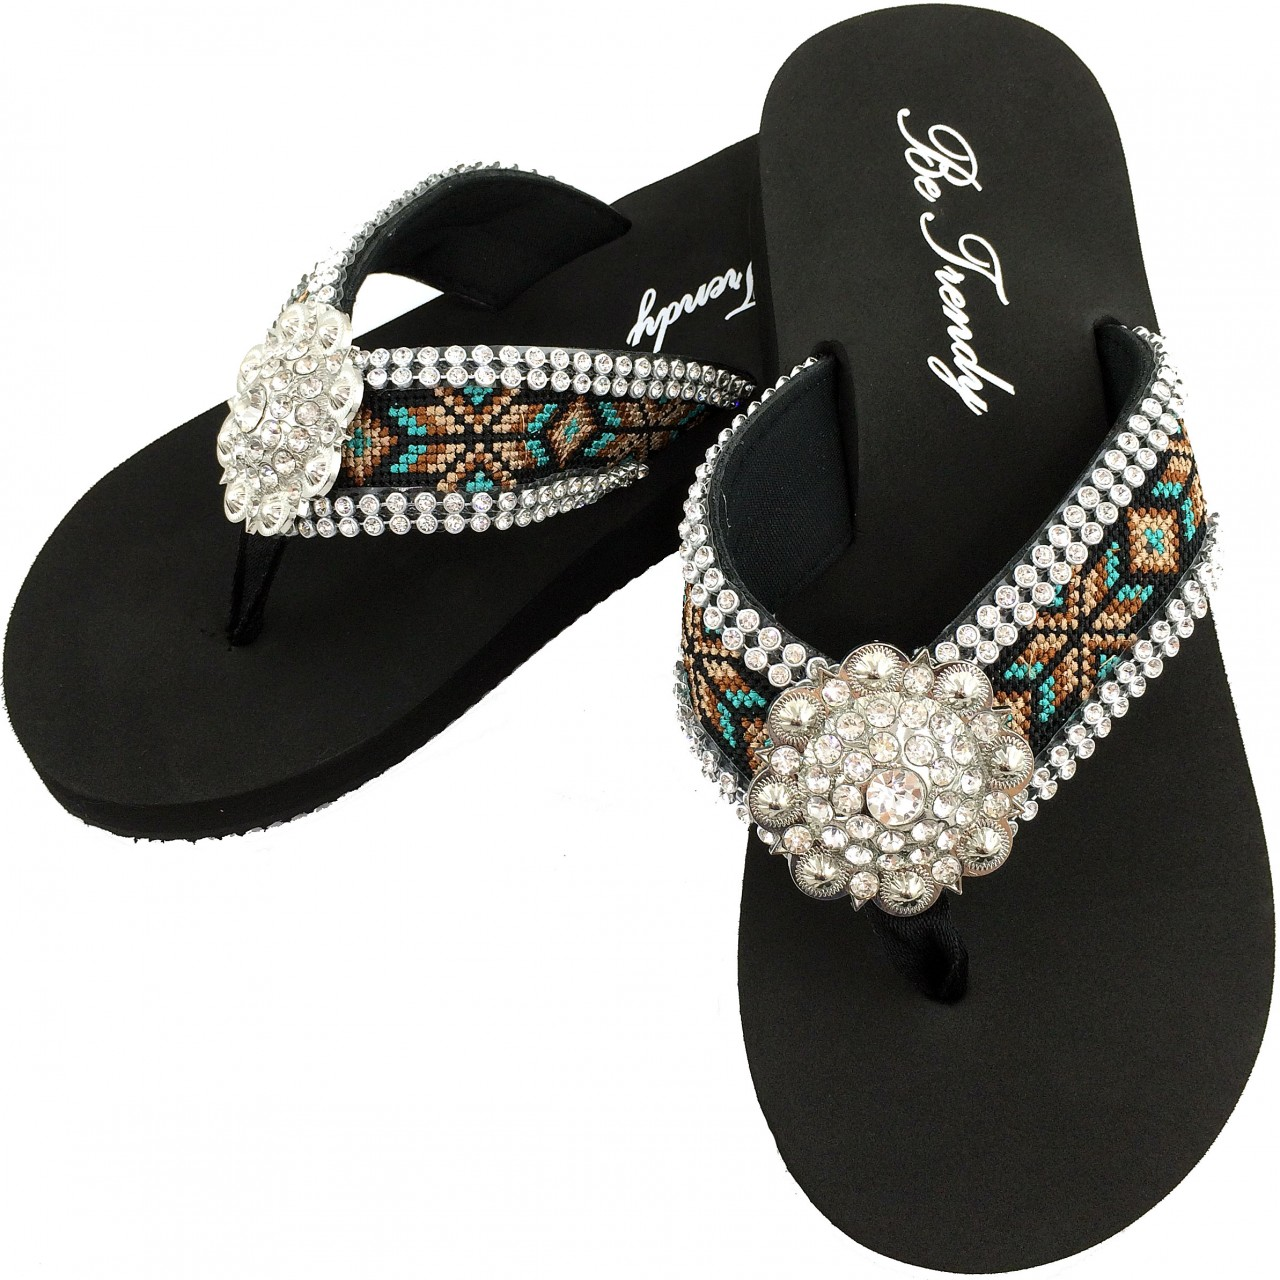 95f83bd94739 WFF000014 Wholesale Rhinestone Western Cowgirl Flip Flops with Concho  Embroidery. Image 1